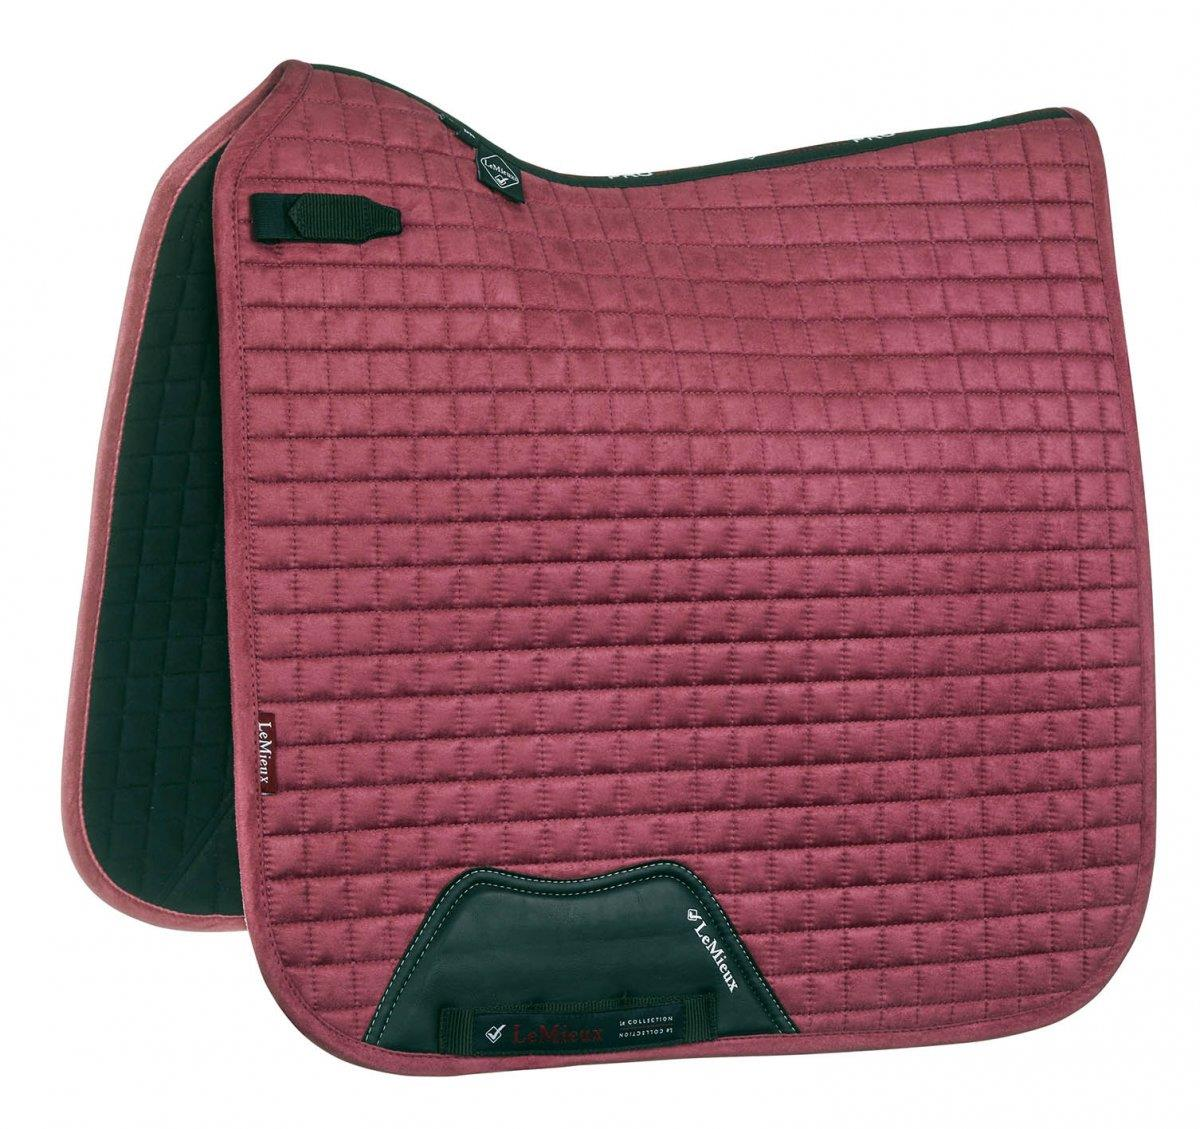 LeMieux-Prosport-Suede-Dressage-Square-Saddlecloth-All-Colours miniature 15